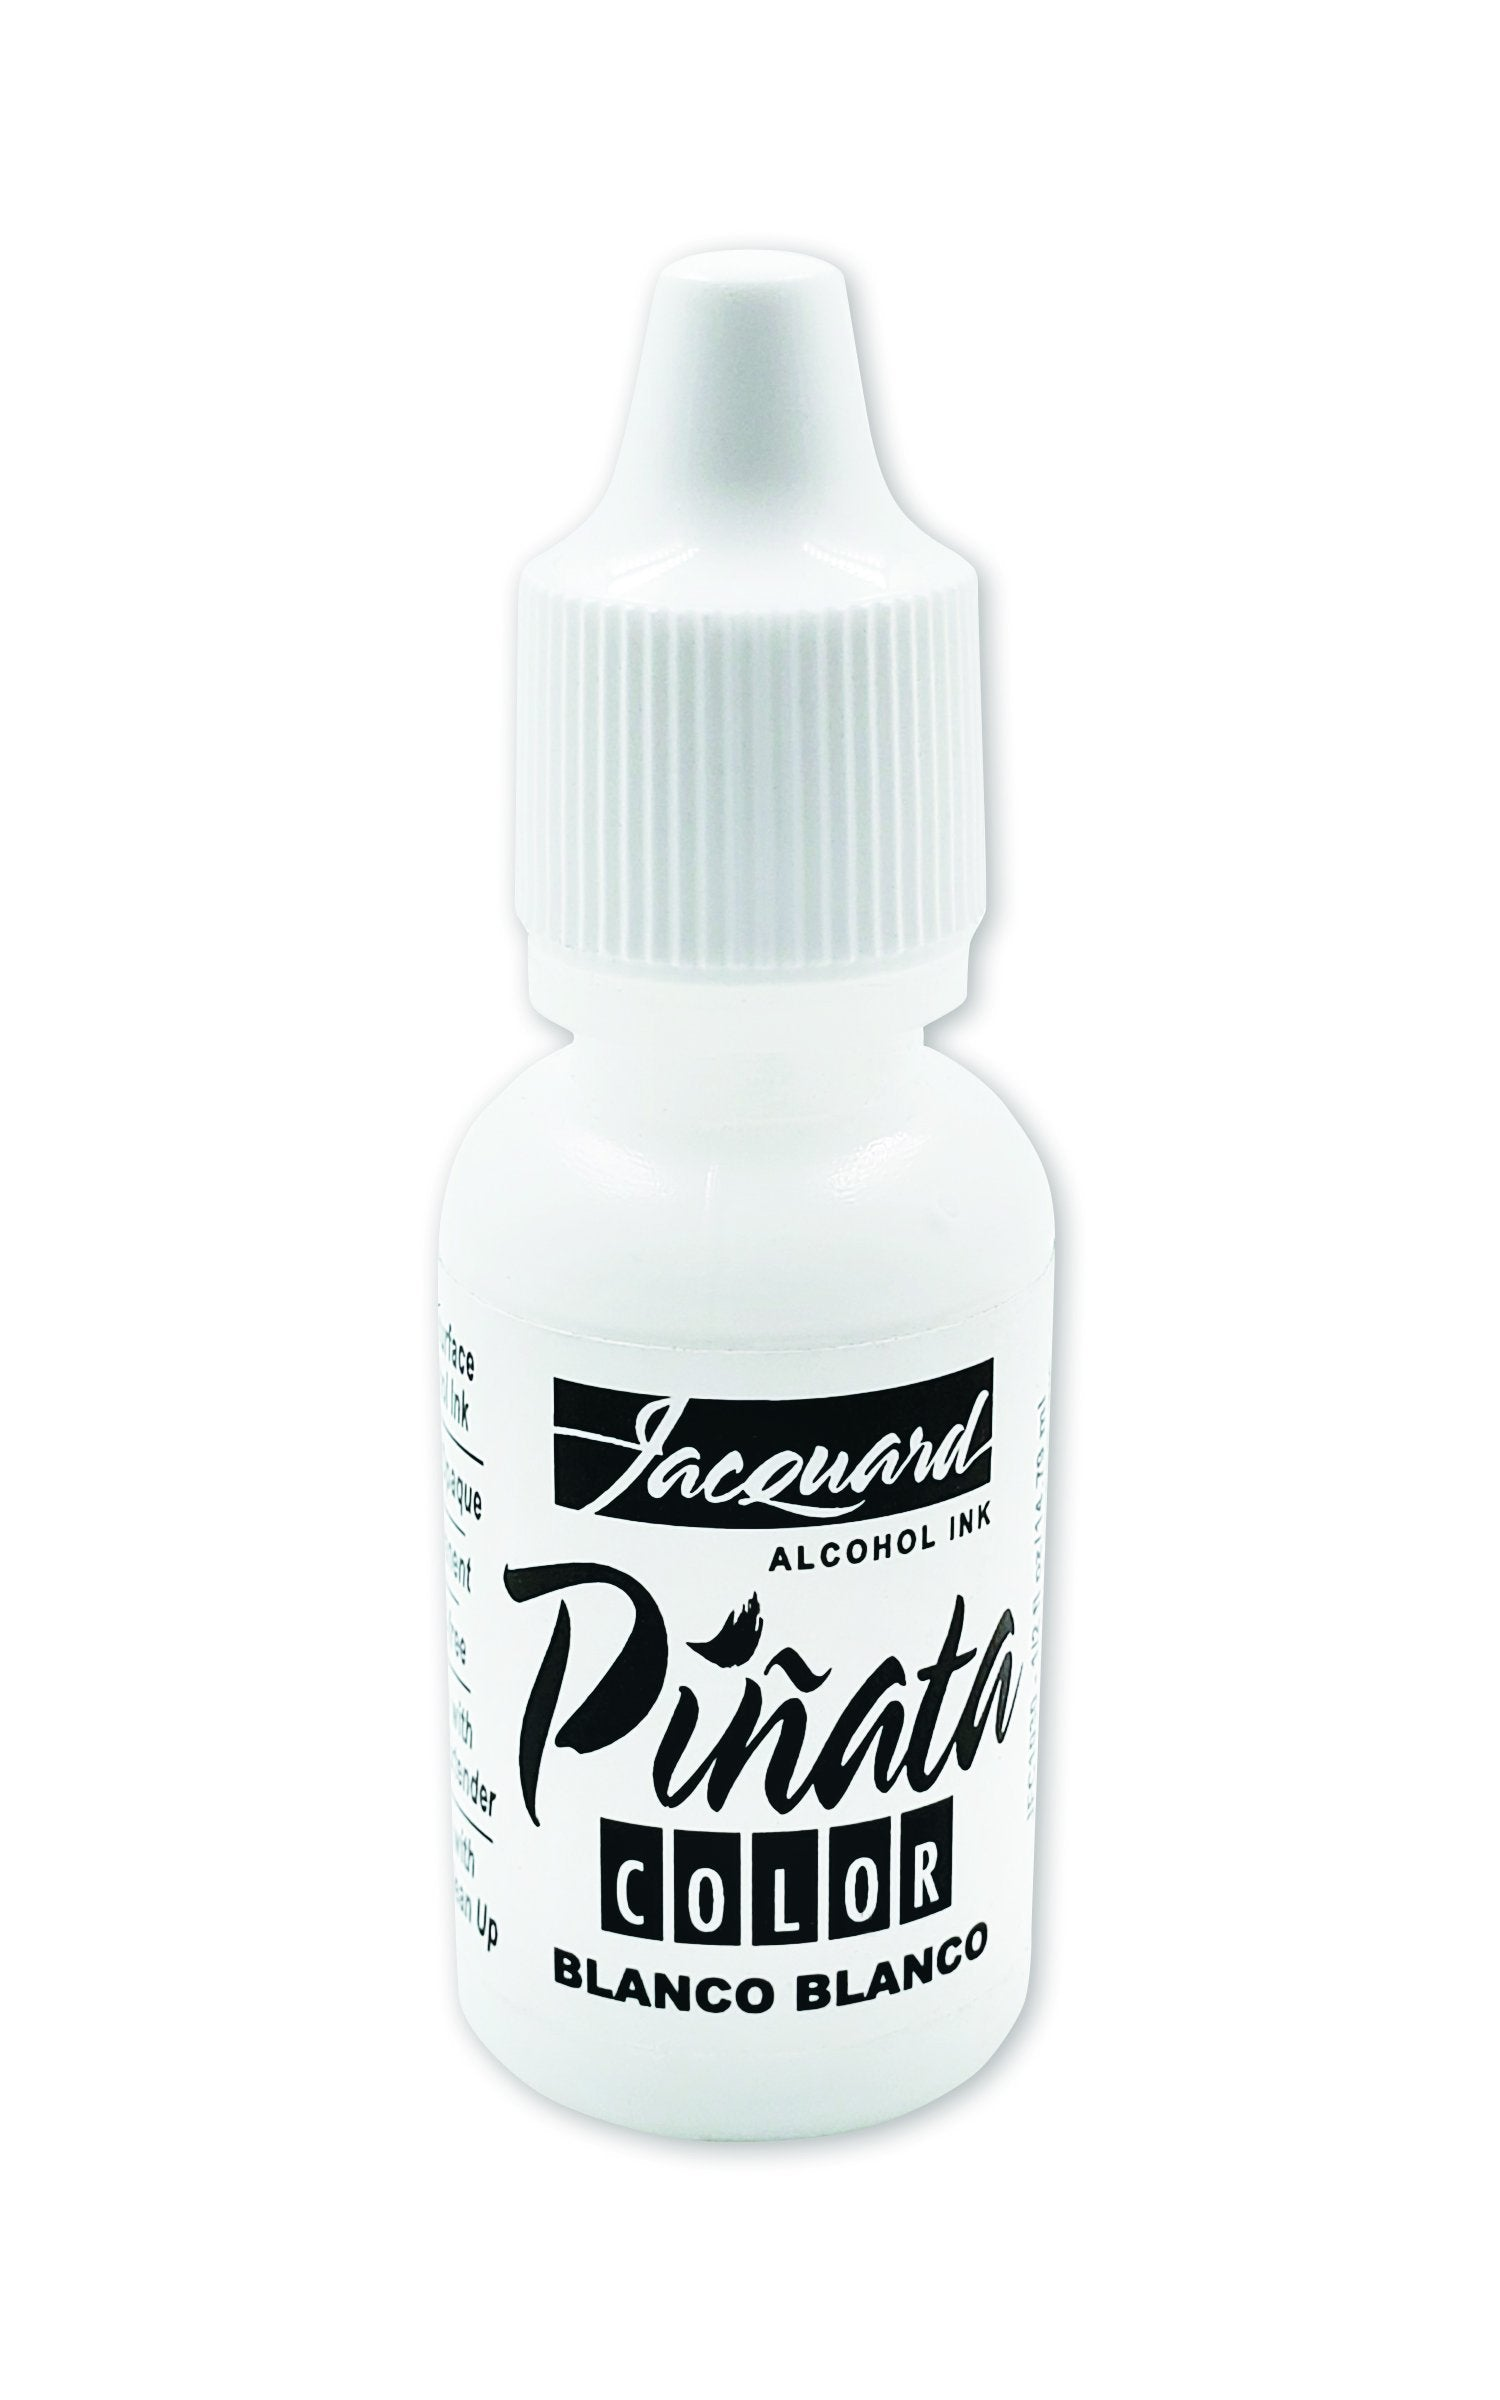 Jacquard Piñata Alcohol Ink, 1/2 oz., Blanco Blanco